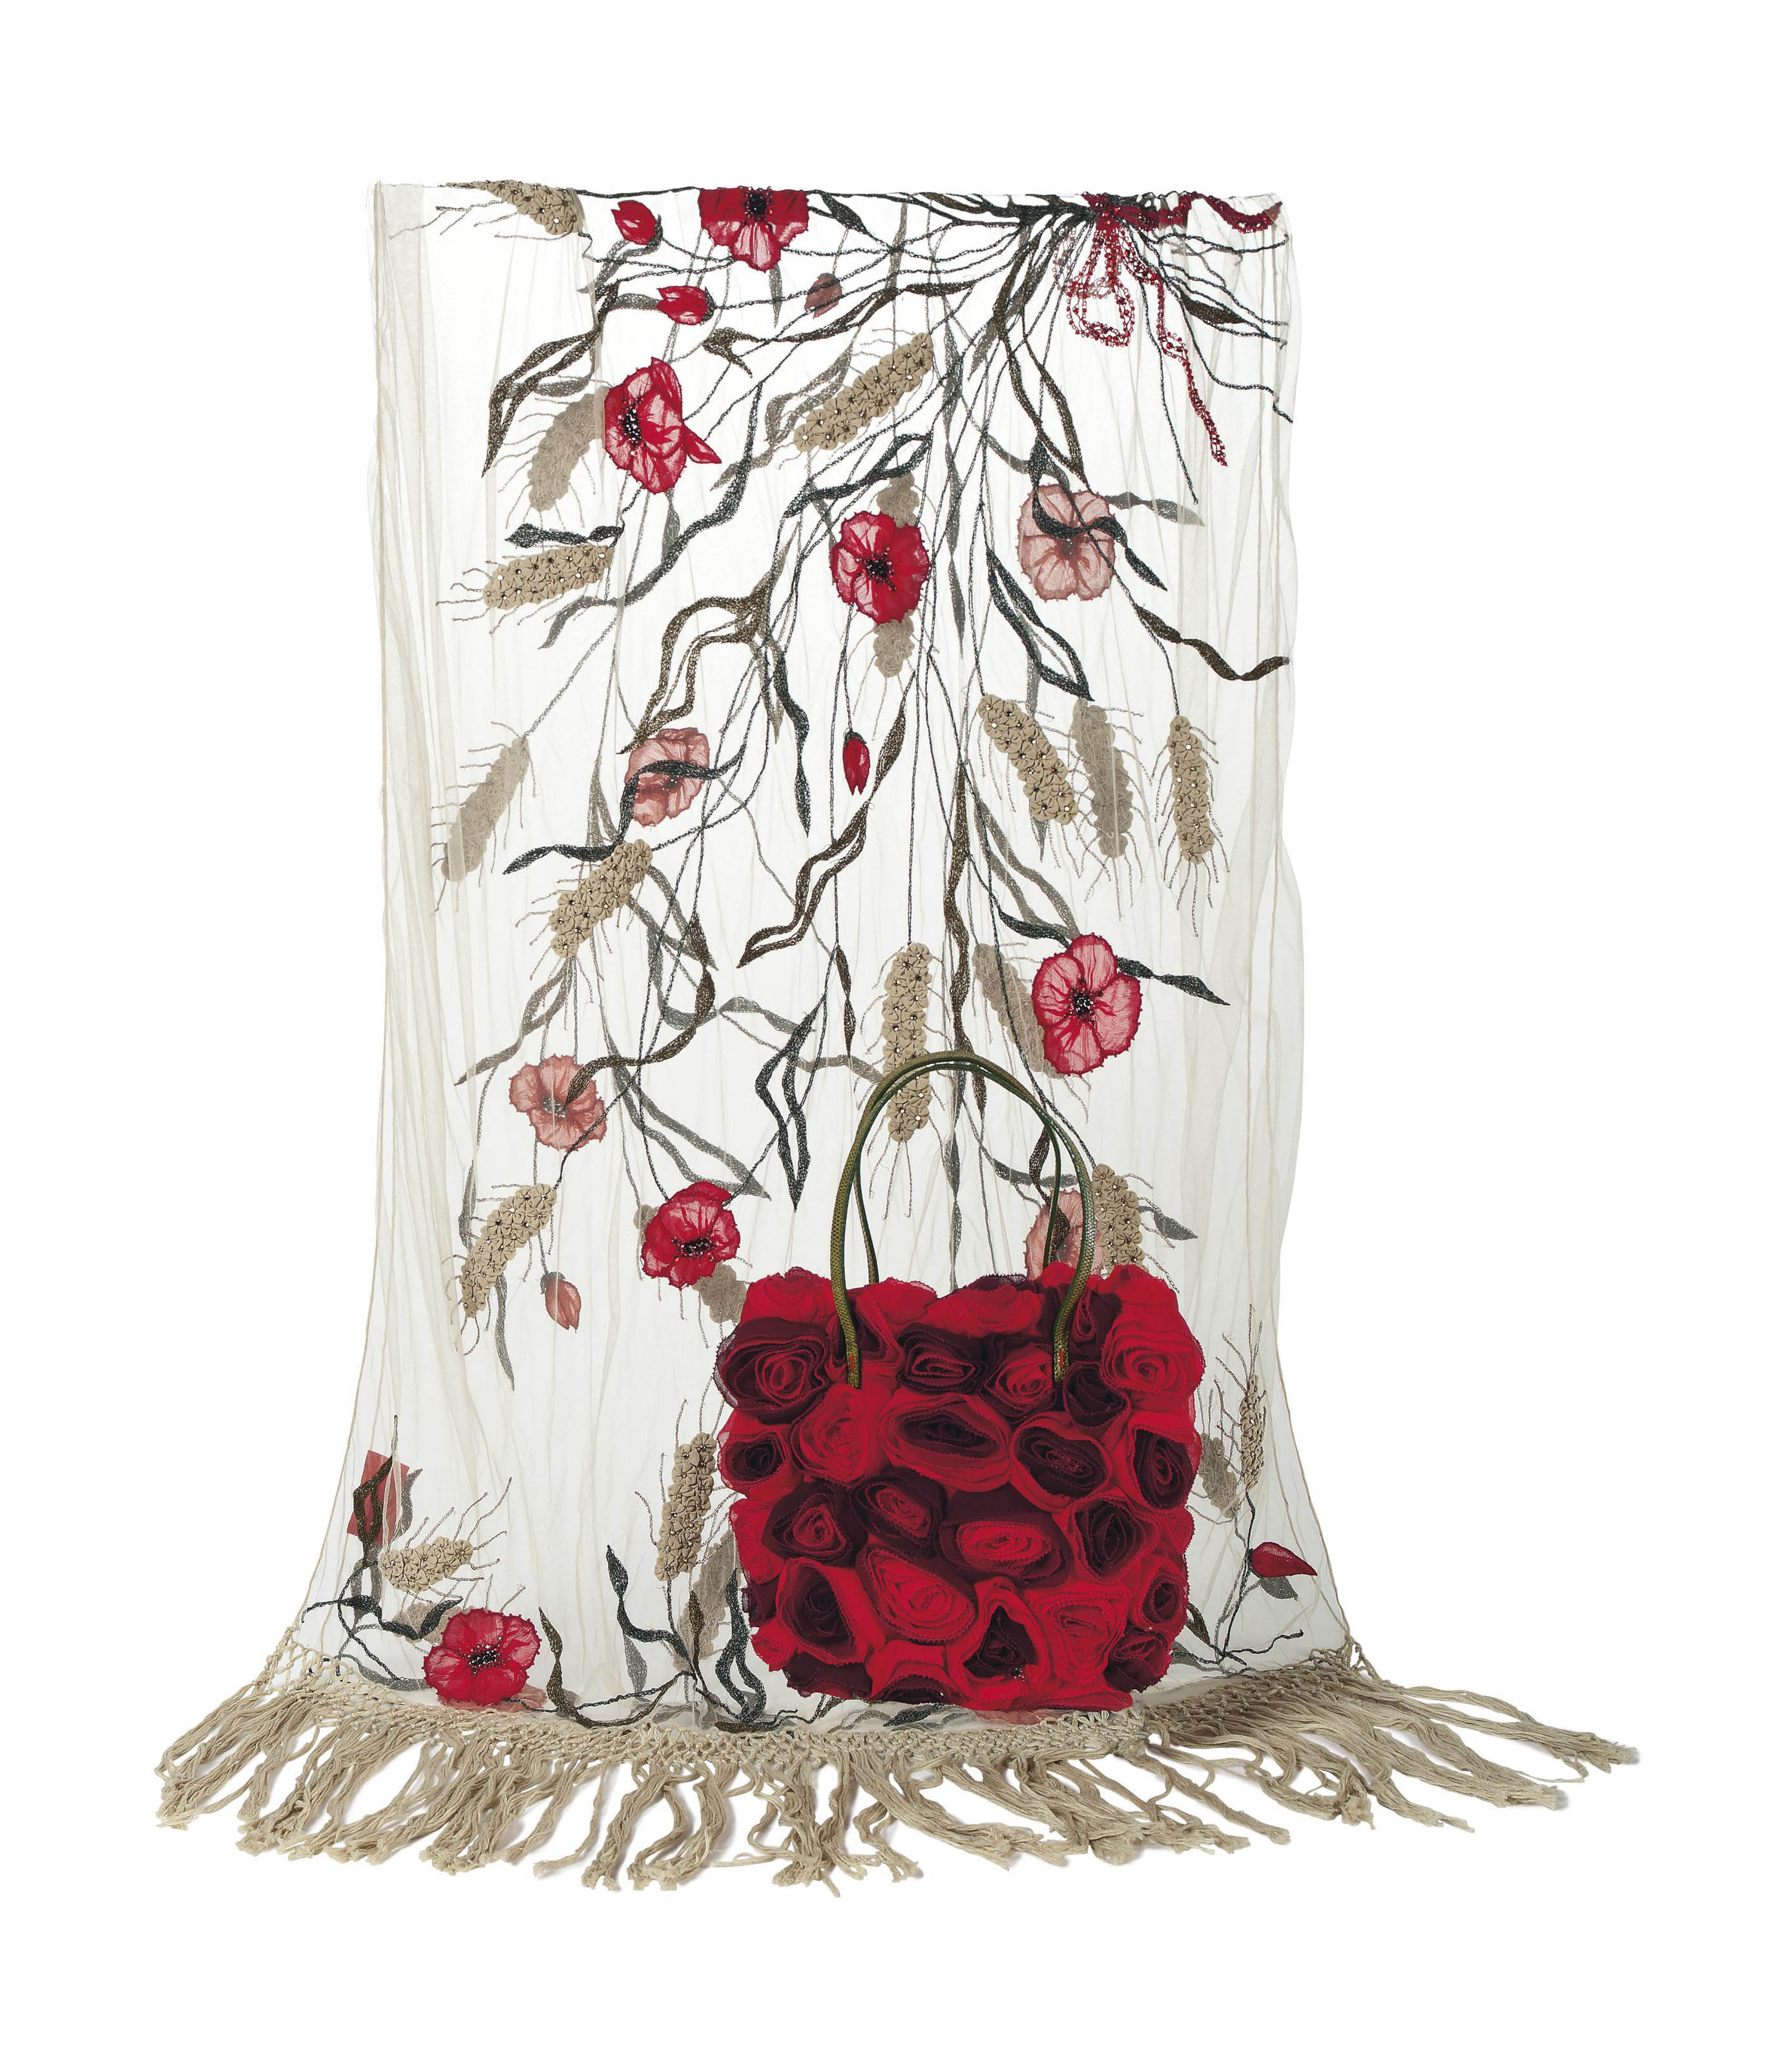 A BAG COMPOSED OF RED CHIFFON ROSES AND AN EMBROIDERED STOLE